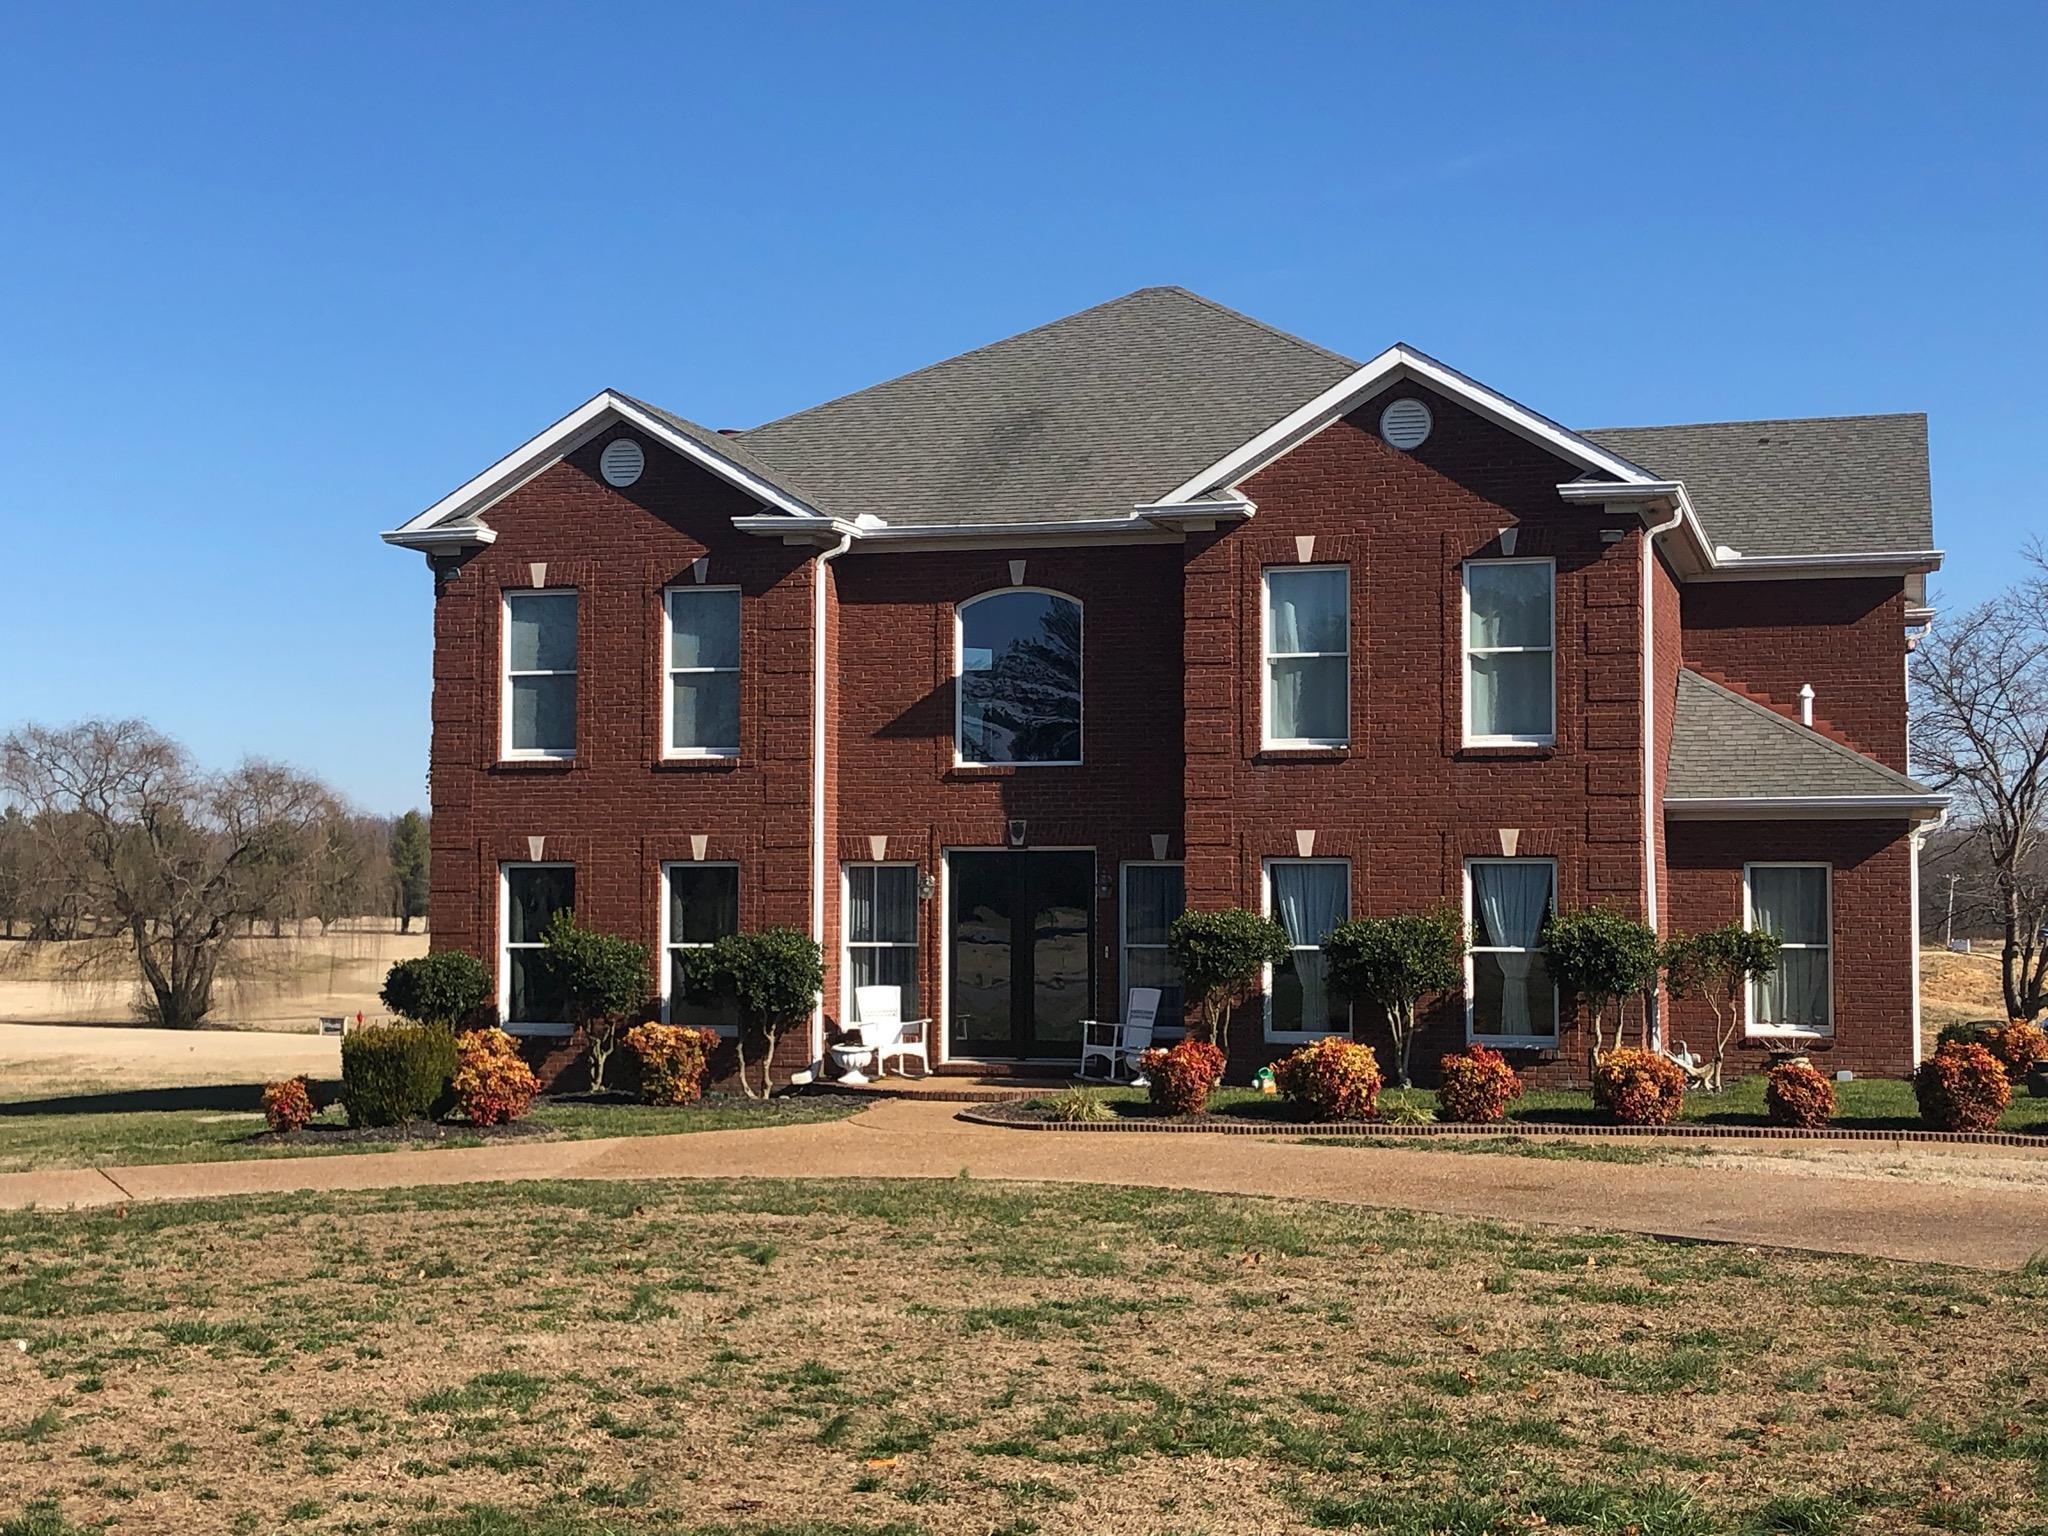 164 Willow Brook Dr, Manchester, Tennessee